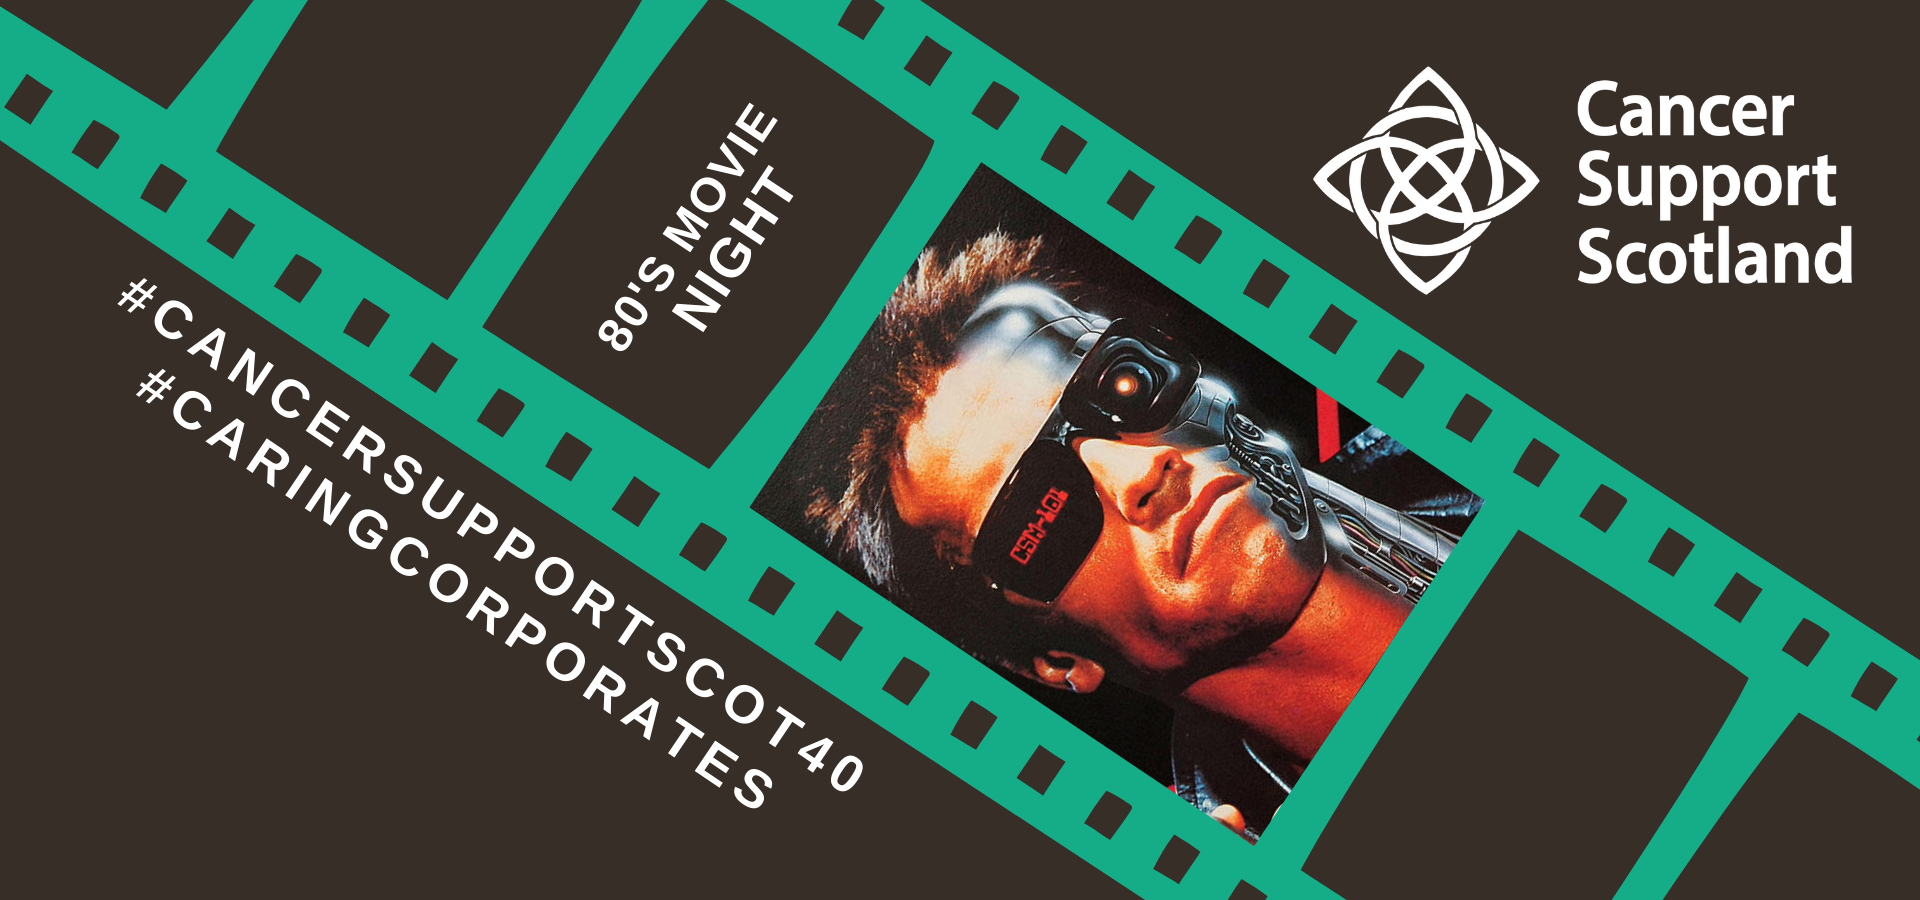 POSTPONED - 80's Movie and Networking Night - Cancer Support Scotland